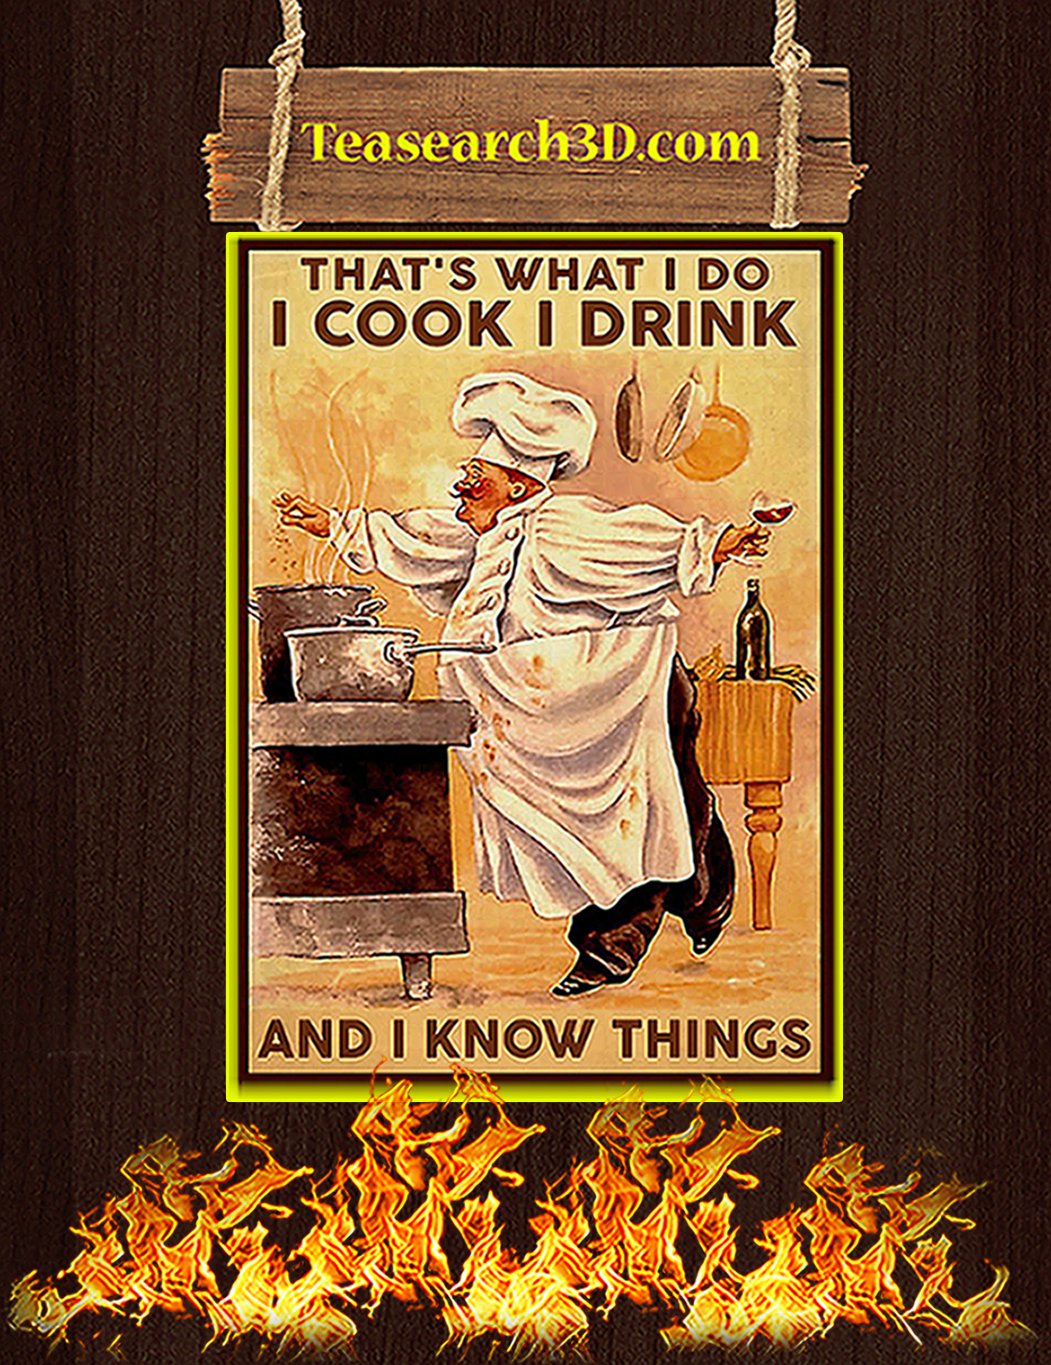 Chef cook that's what I do I cook I drink and I know things poster A1